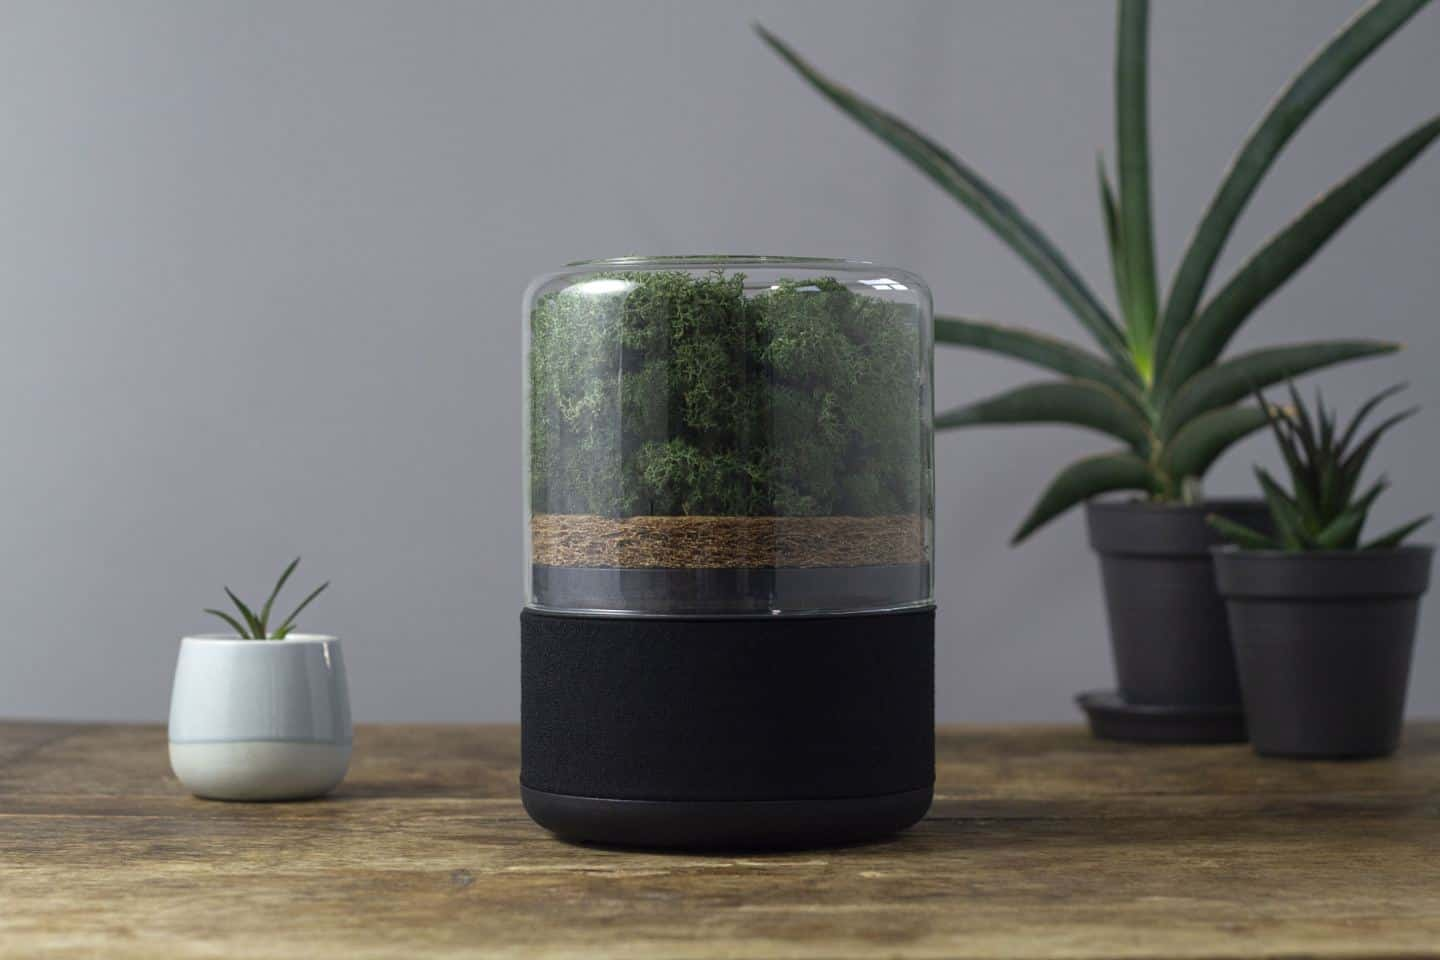 The Briiv sustainable and natural air purifier on a wooden surface surrounded by plants